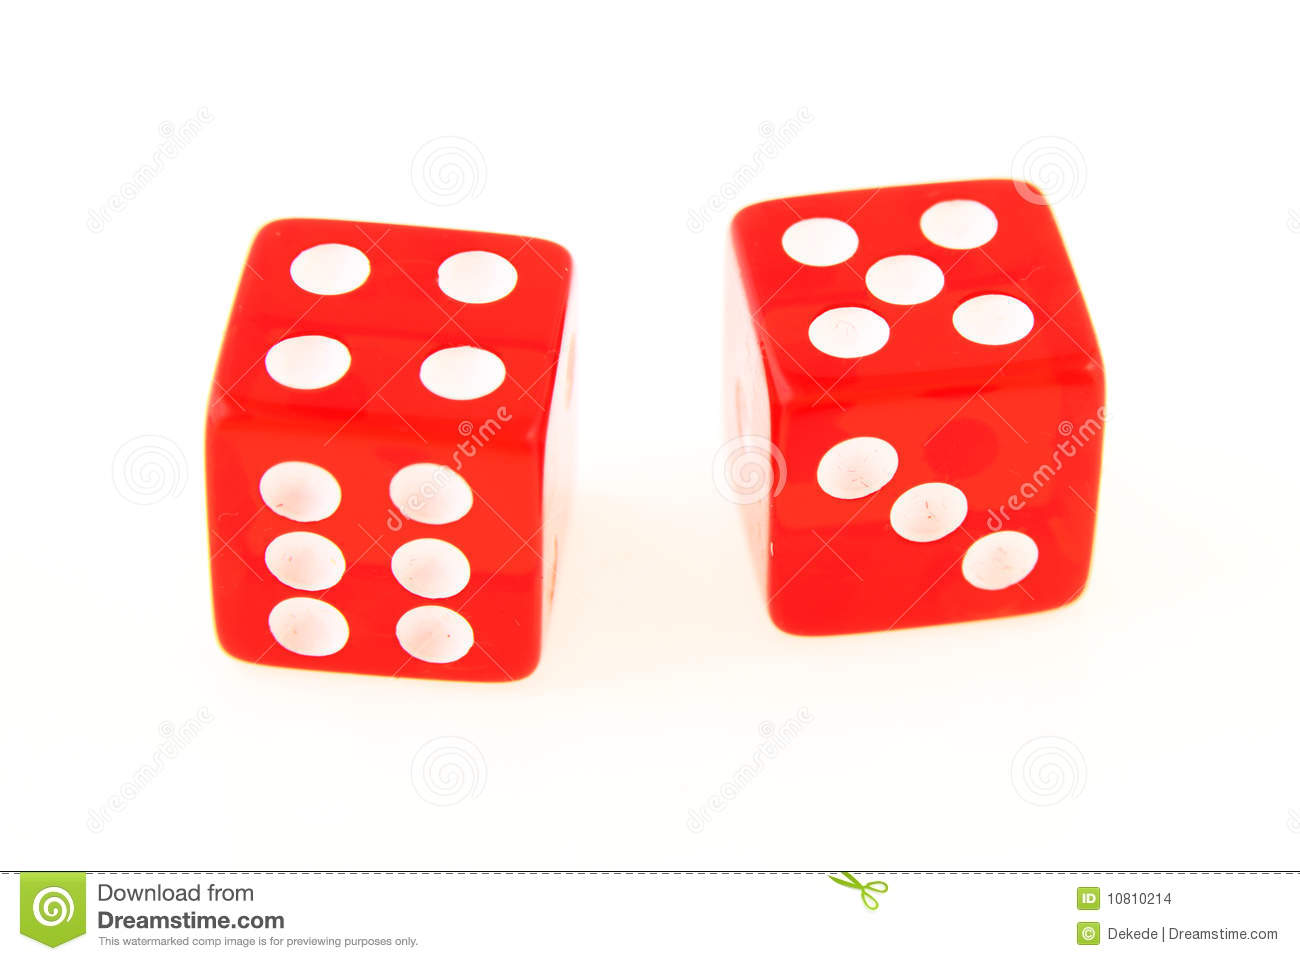 Stock Images  2 Dice Close Up   Showing The Numbers 4 And 5  Image